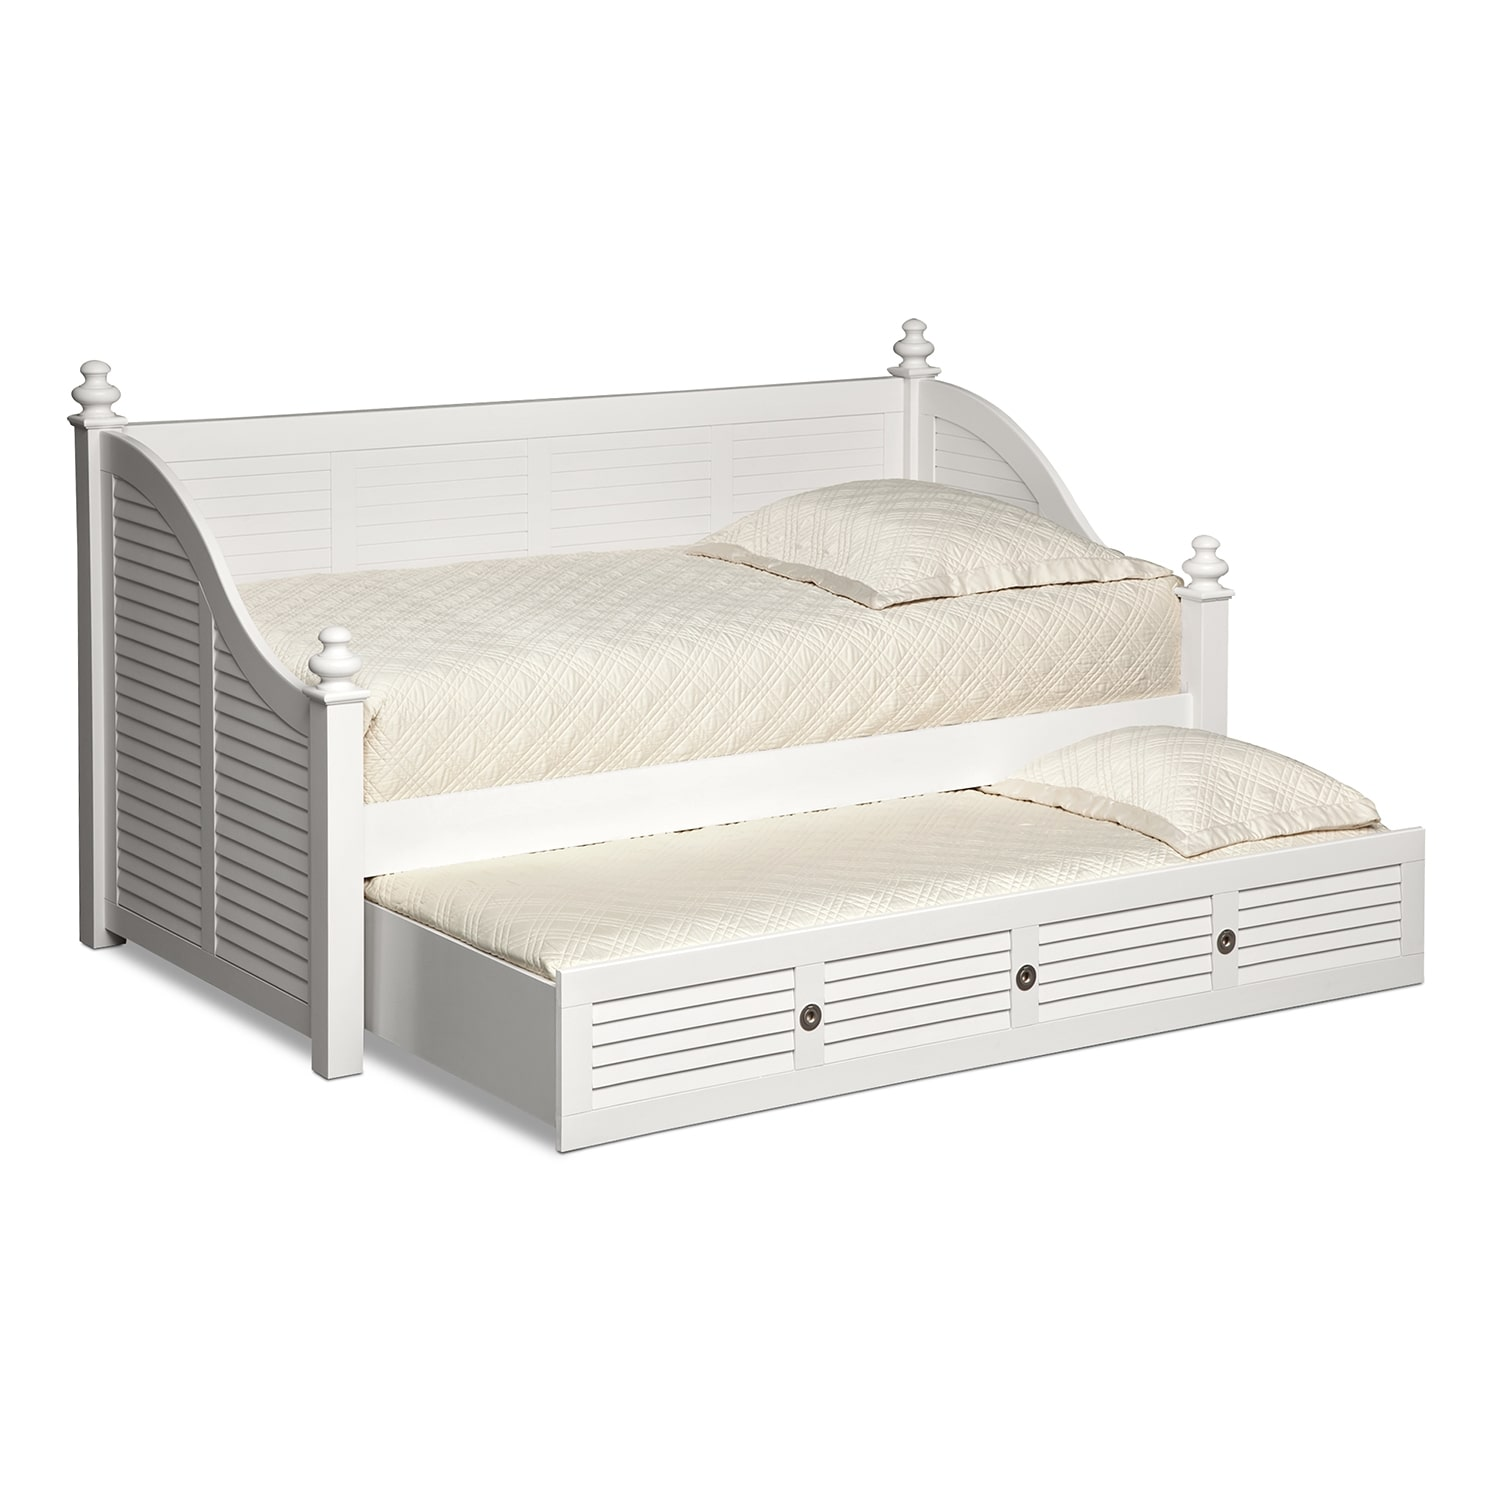 Full Beds. Have a small bedroom but want more than a twin bed? Looking for bedroom furniture for a guest room but can't fit a queen bed? If you answered yes to either of those questions, a full bed is the right choice for you.